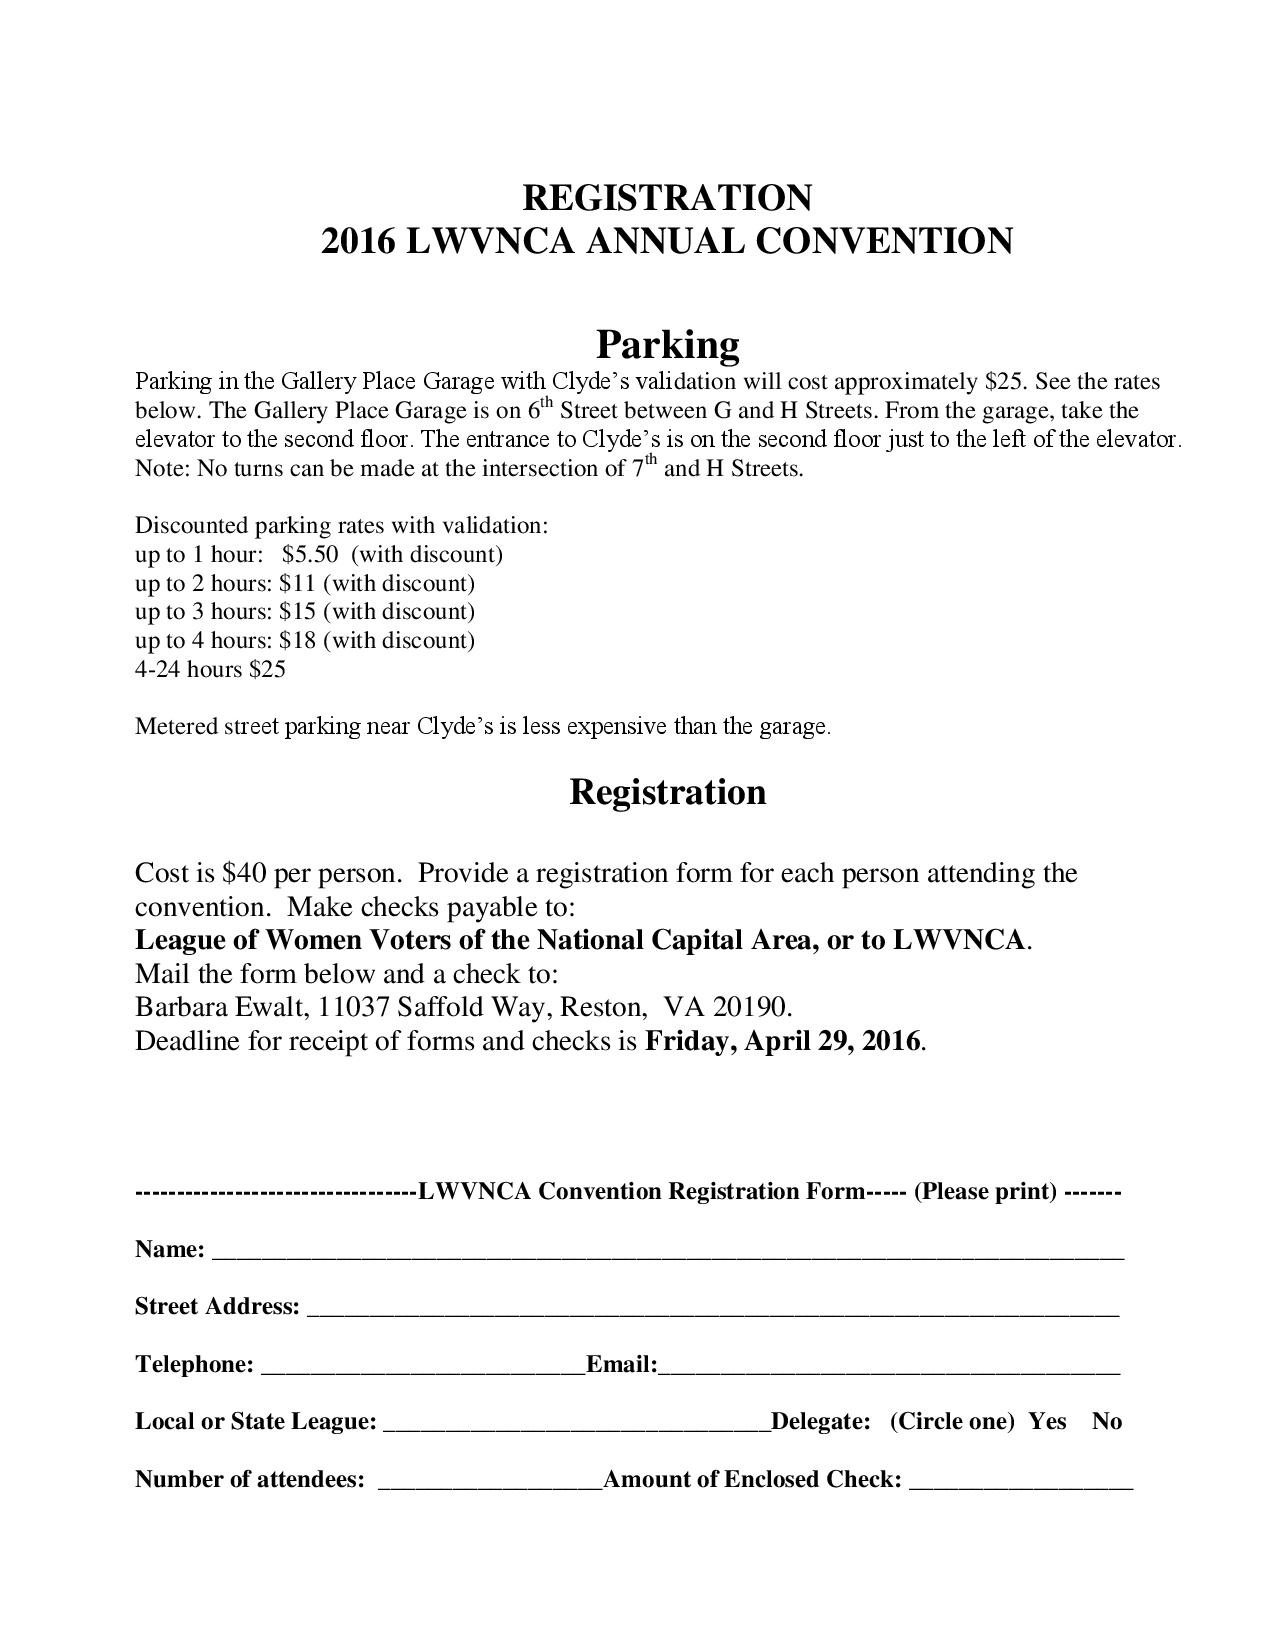 2016lwvncaconventionregistration2.jpg